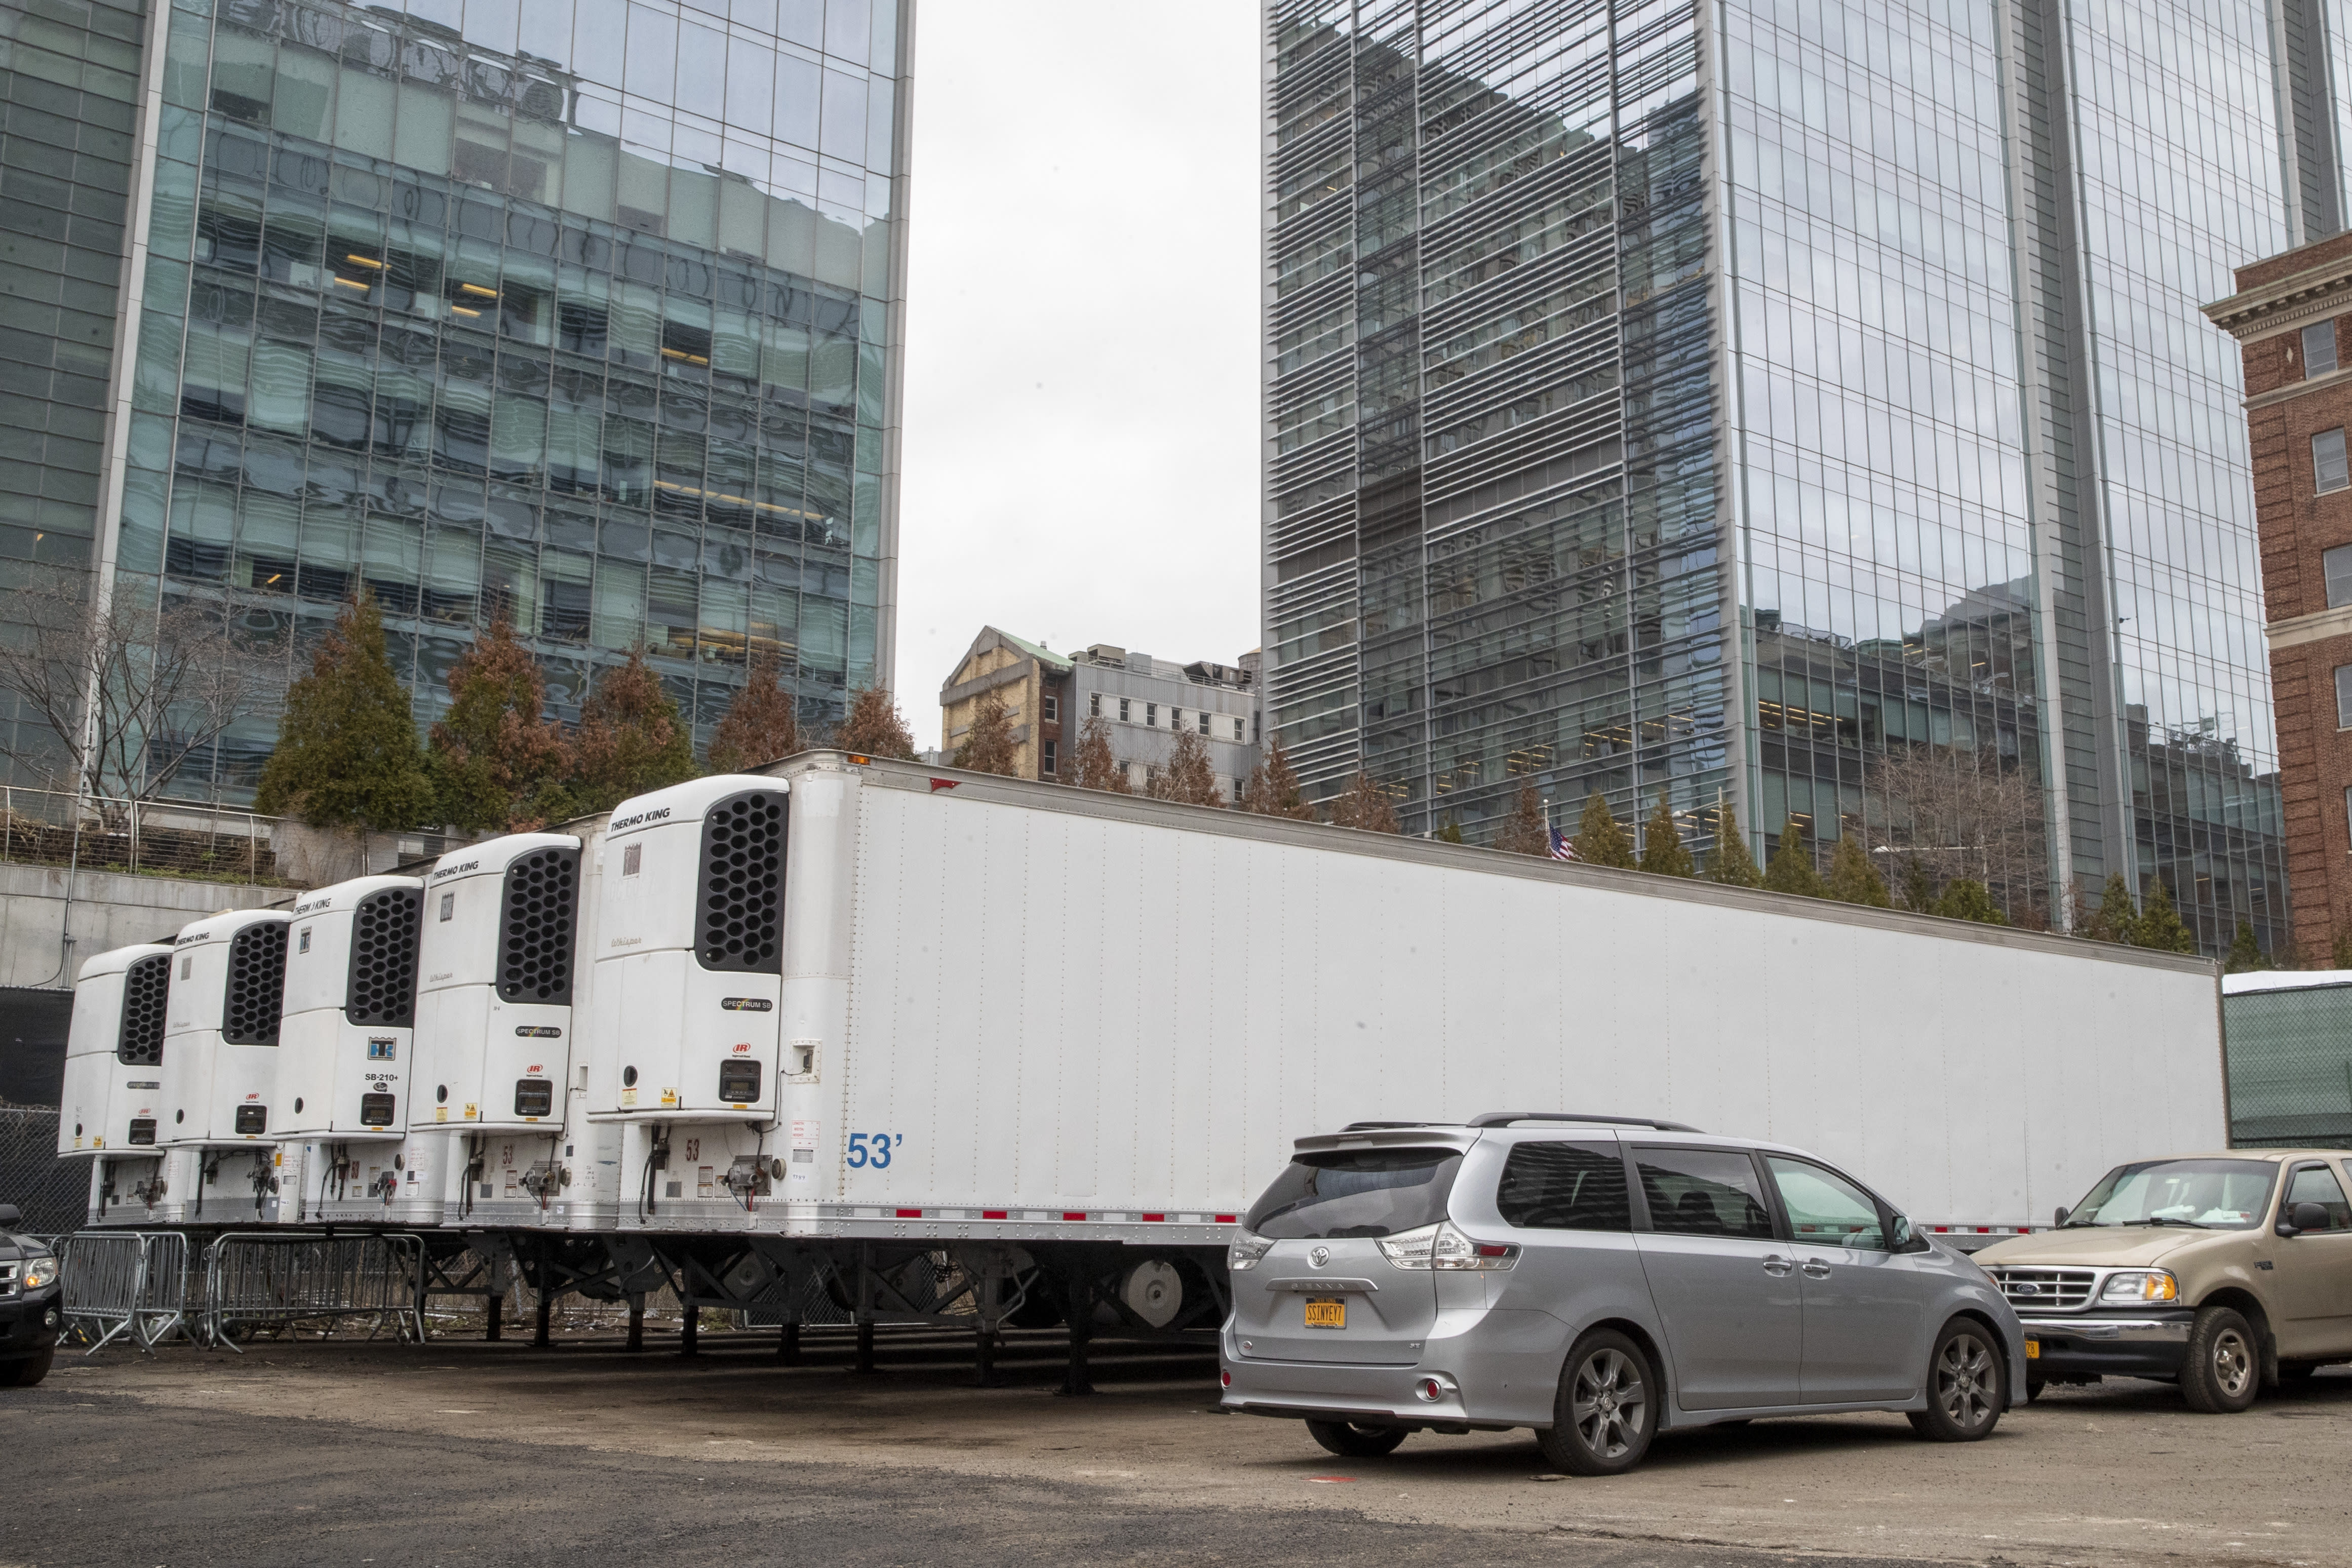 Refrigerated trailers are seen parked at the site of a makeshift morgue being built in New York, Wednesday, March 25, 2020. New York officials are keeping a close eye on already-stressed hospitals as the number of cases is projected to rise for perhaps three more weeks. The new coronavirus causes mild or moderate symptoms for most people, but for some, especially older adults and people with existing health problems, it can cause more severe illness or death. (AP Photo/Mary Altaffer)